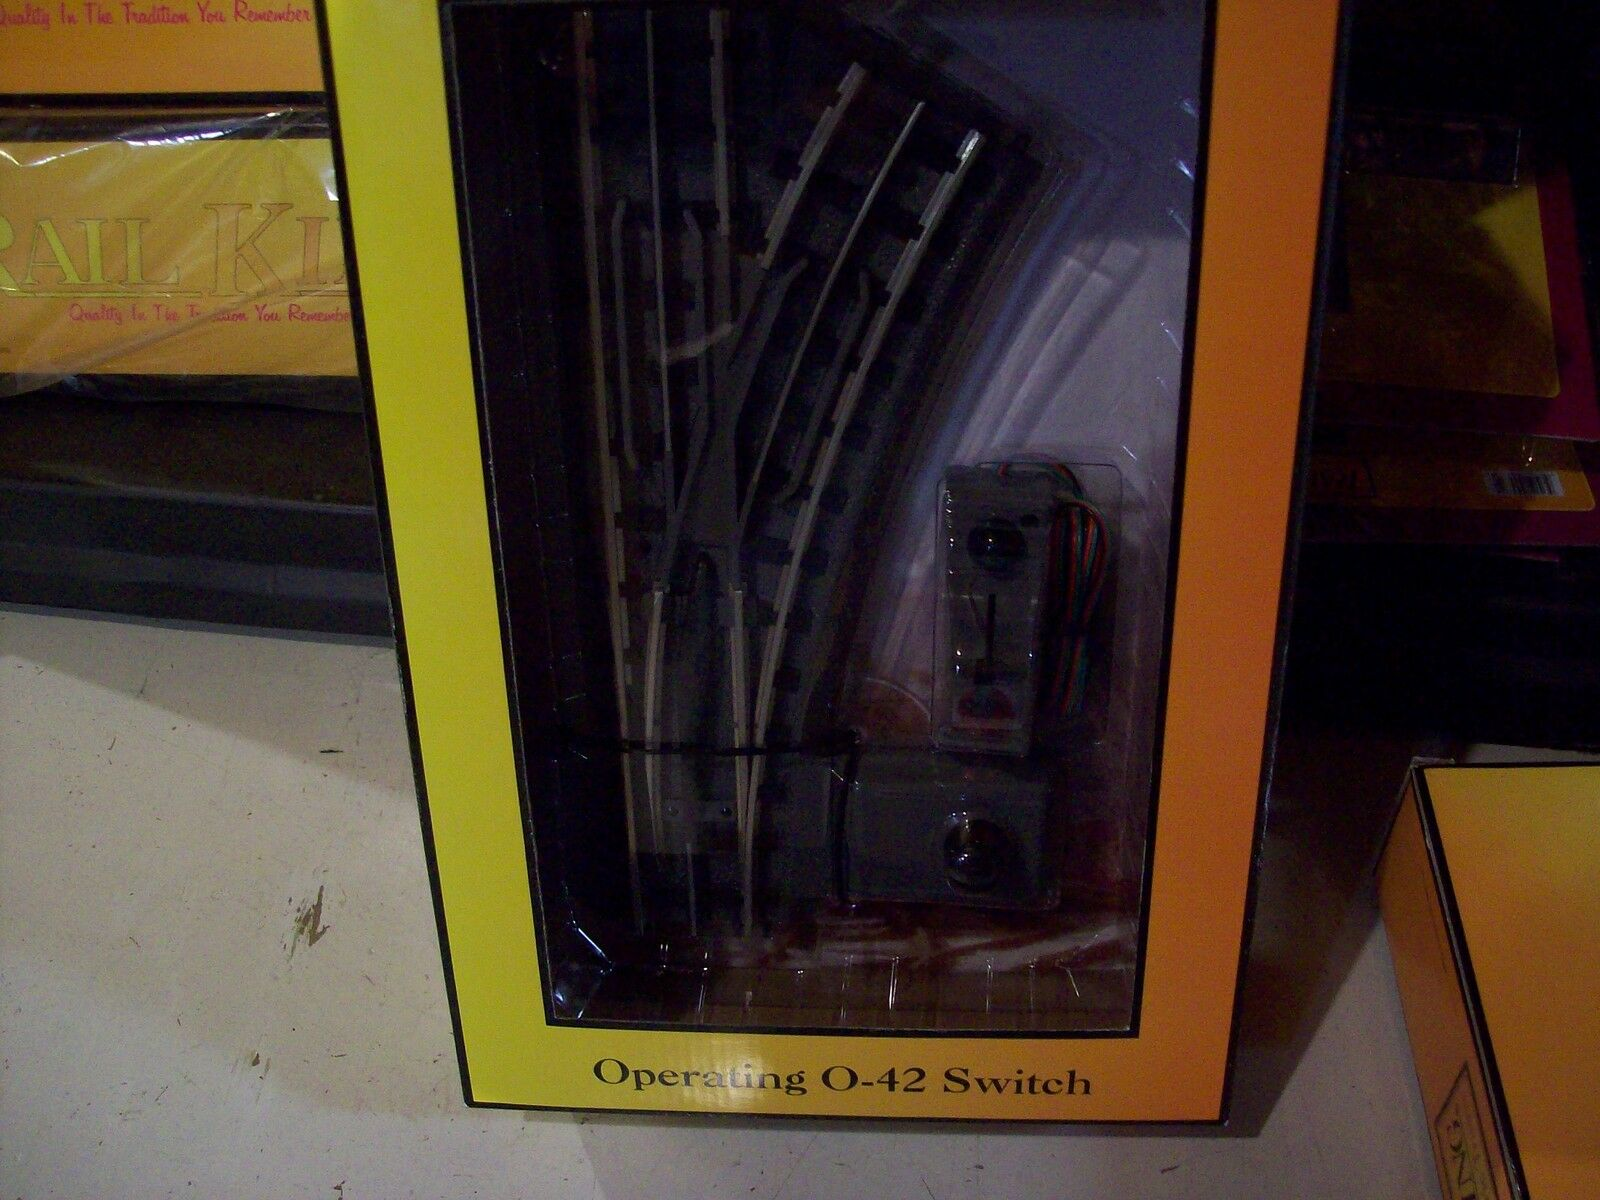 MTH Railking O Scale Trains Operating O-42 Right Hand Switch 40-1043